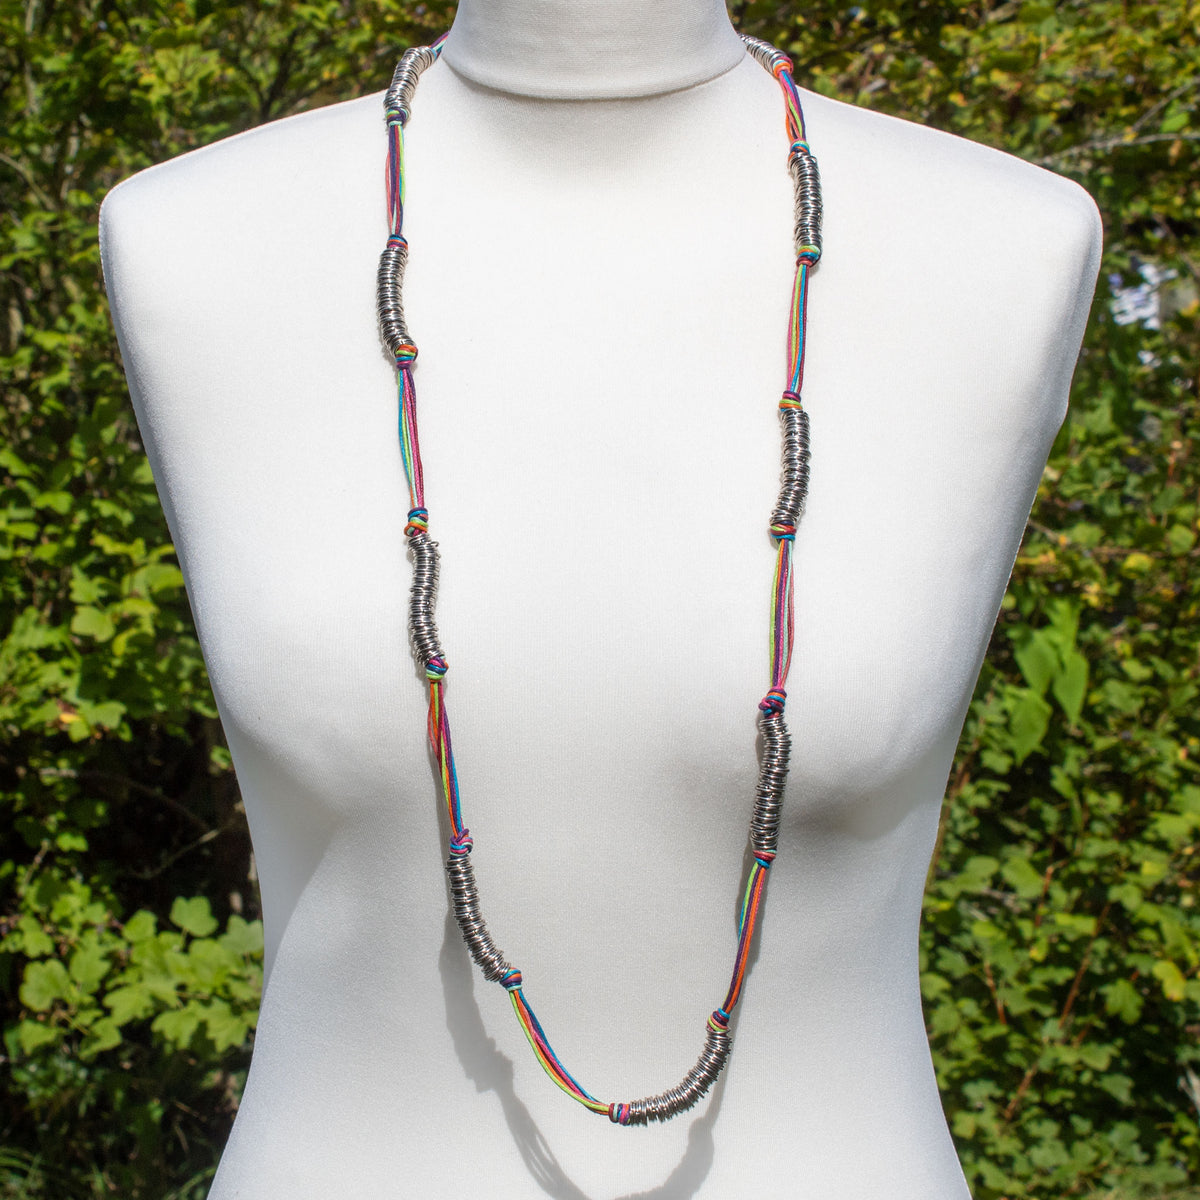 Rainbow Cord & Metallic Silver Ring Necklace | Necklace - The Naughty Shrew